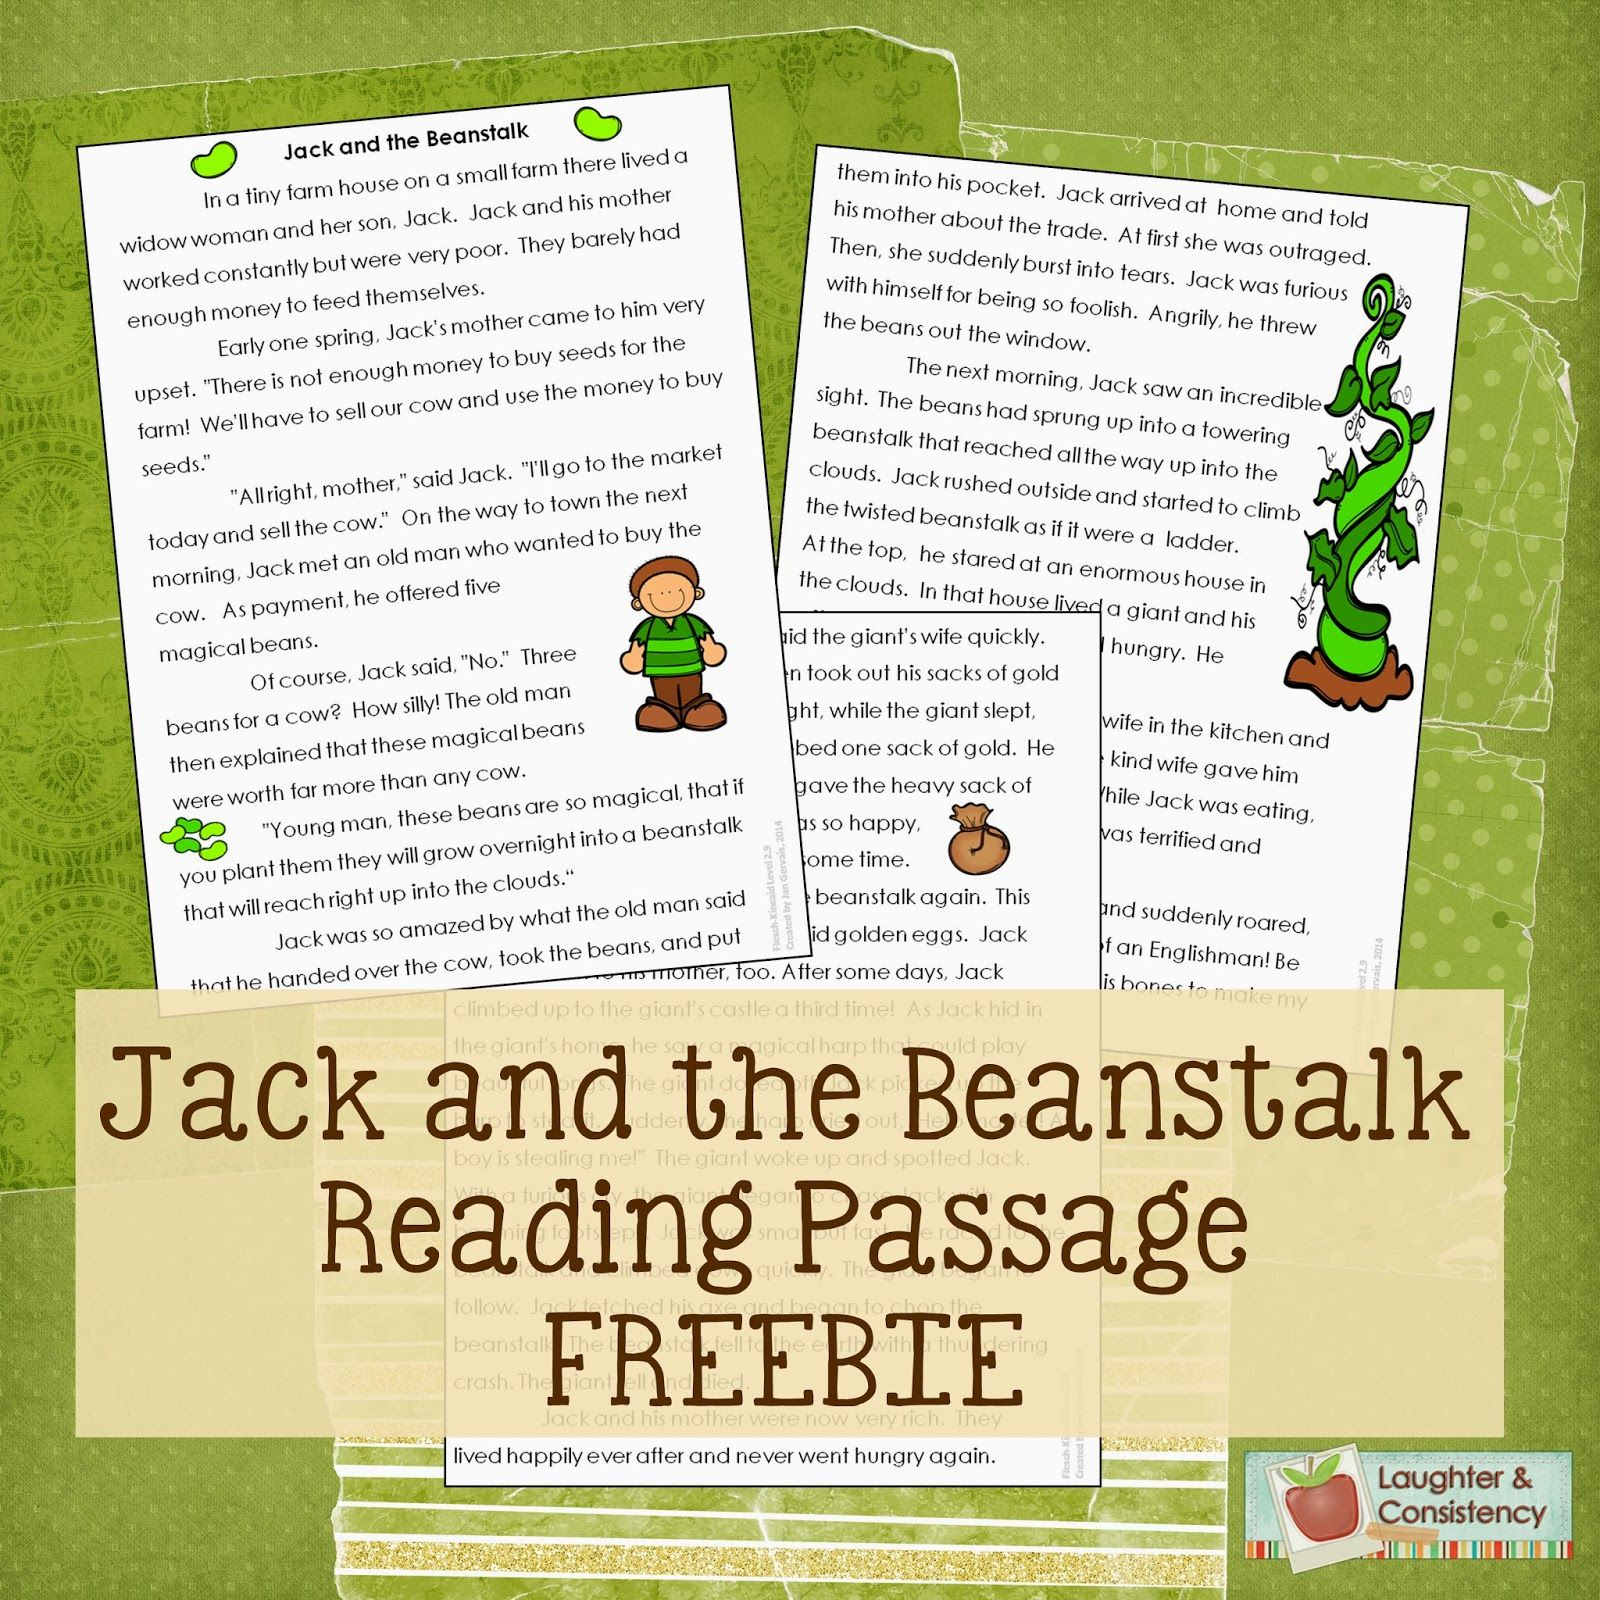 Jack And The Beanstalk FREEBIE Passage Use Along With